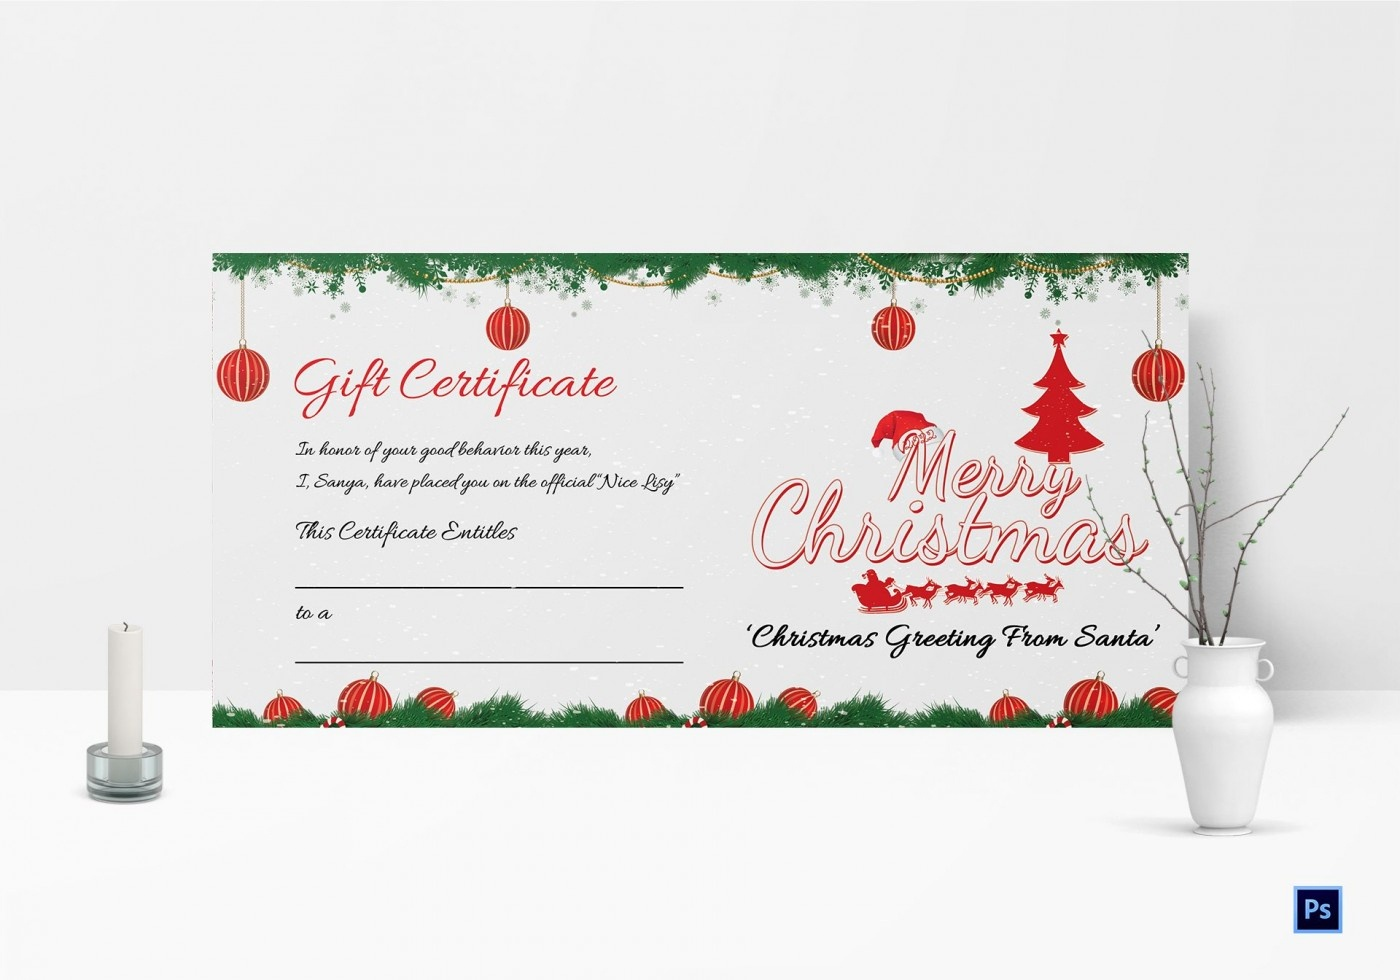 013 Template Ideas Printable Gifts Merry Christmas Awesome Gift - Free Printable Gift Certificate Christmas